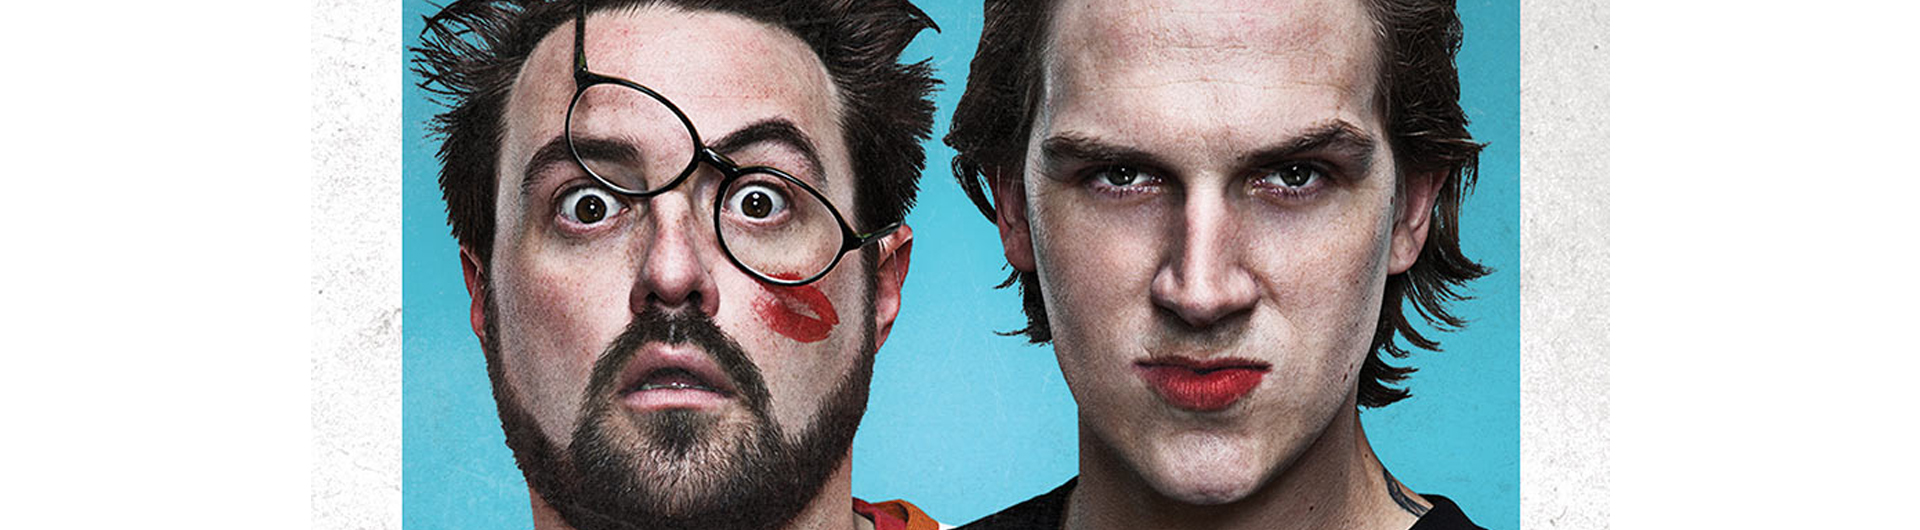 Photo of Jay and Silent Bob with glasses askew and lipstick mark on face